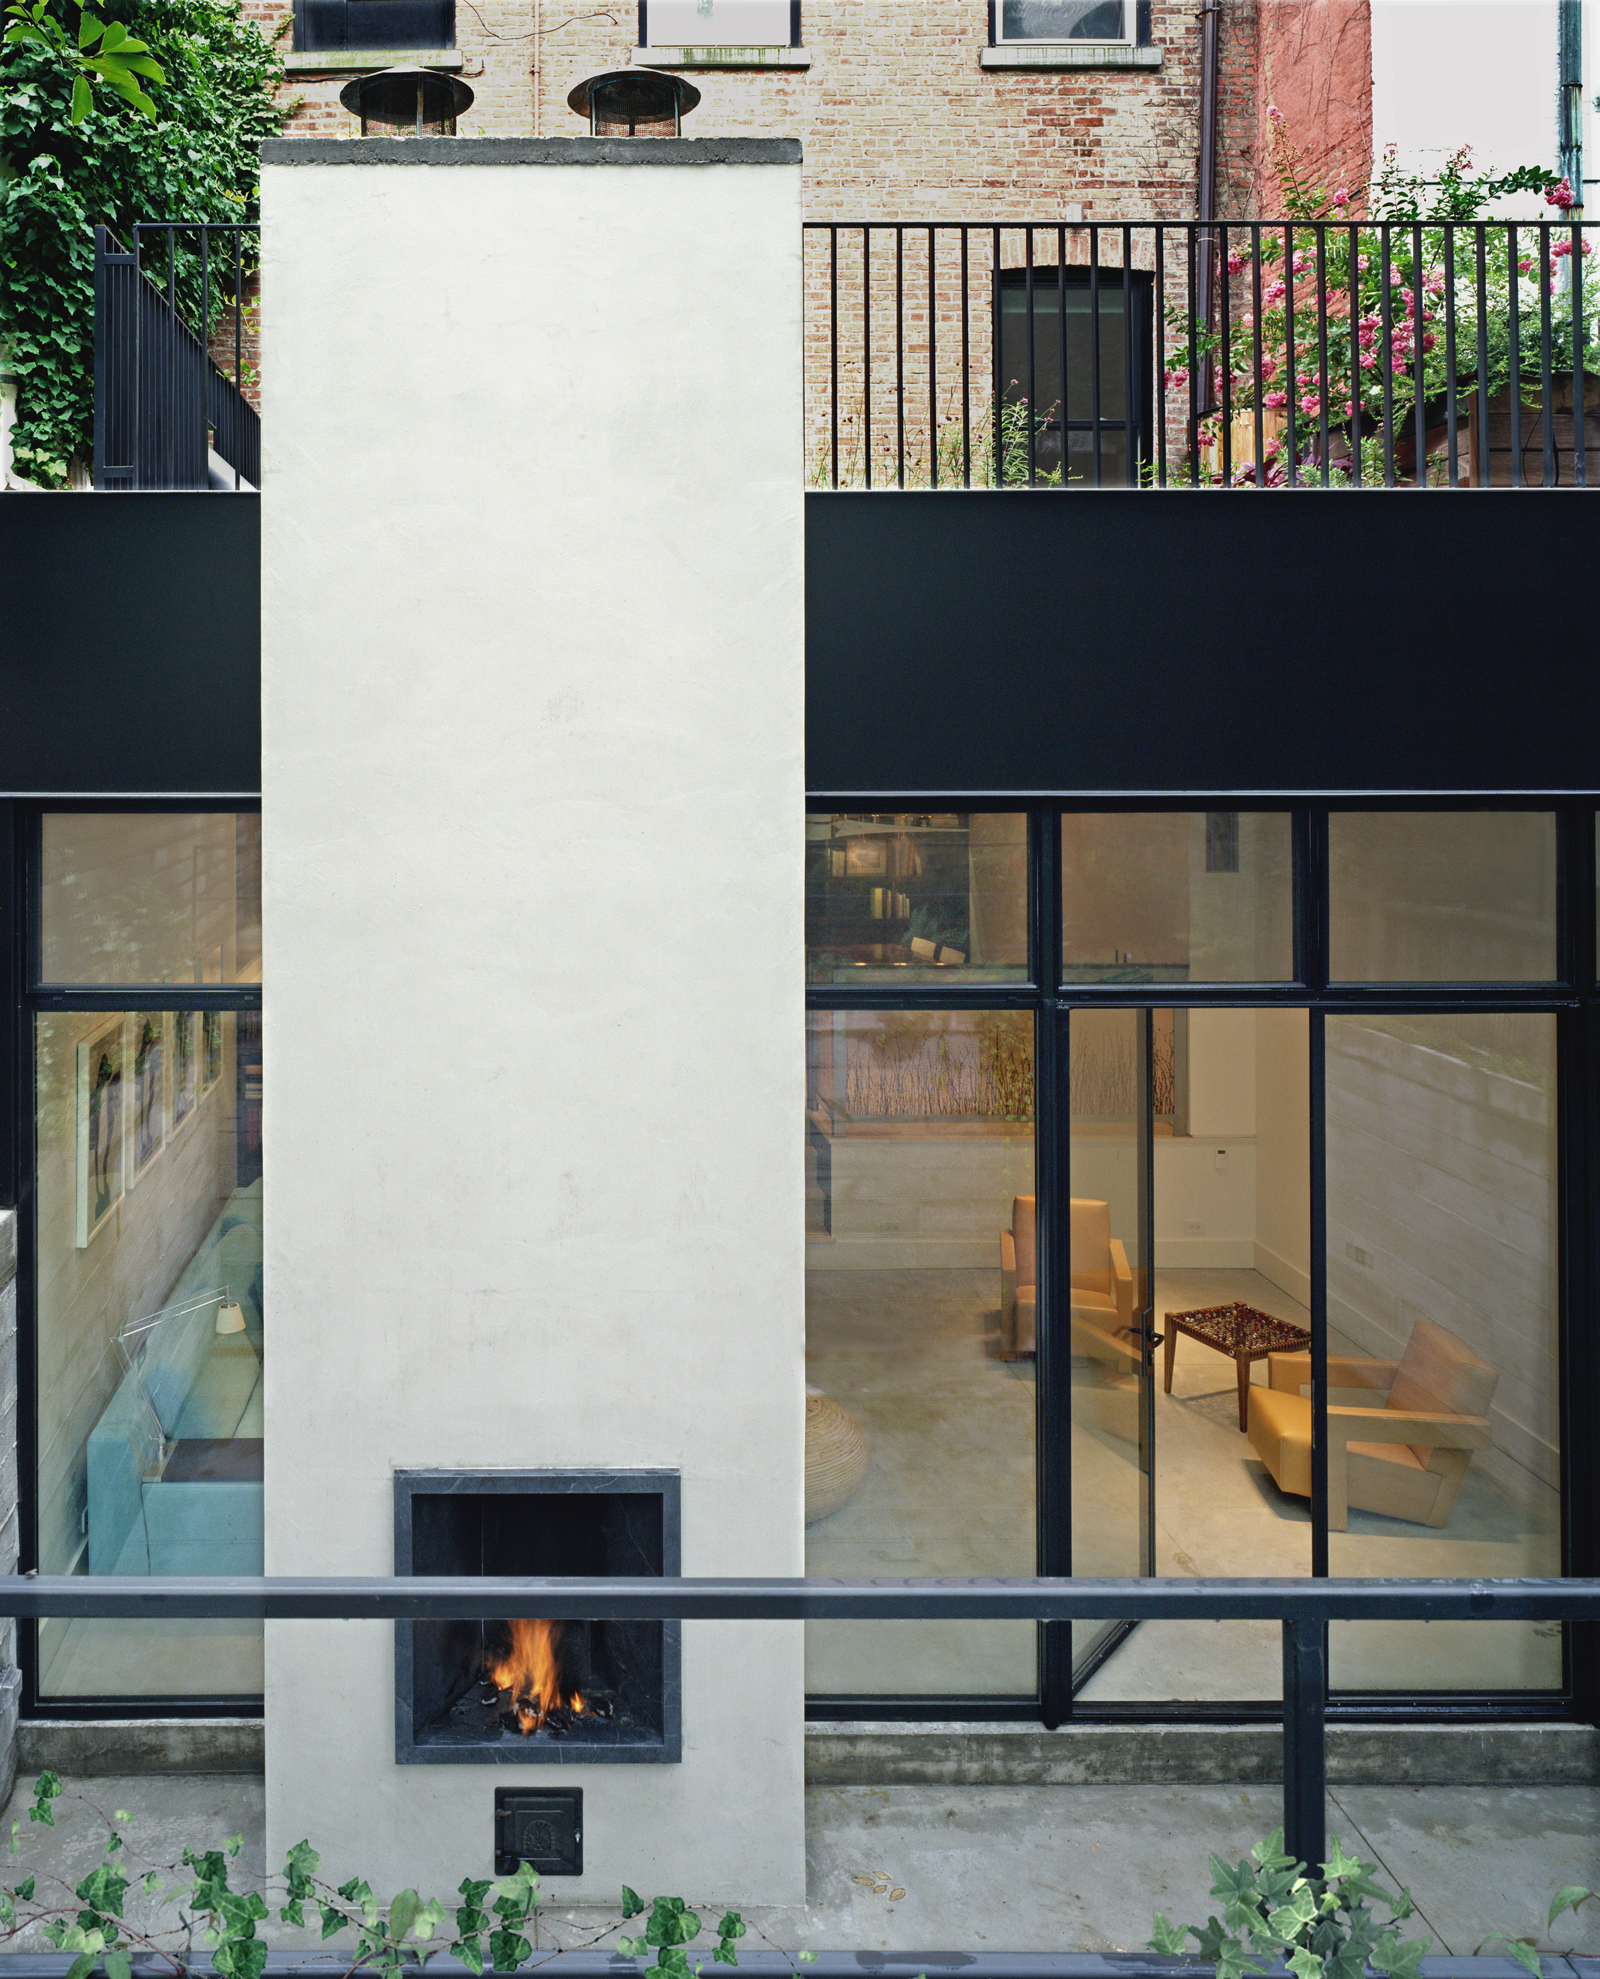 A chimney with back-to-back indoor and outdoor fireplaces anchors the steel and glass wall of the rear addition and allows the courtyard to be used well into autumn as an extension of the living space. Running the same troweled concrete flooring inside an